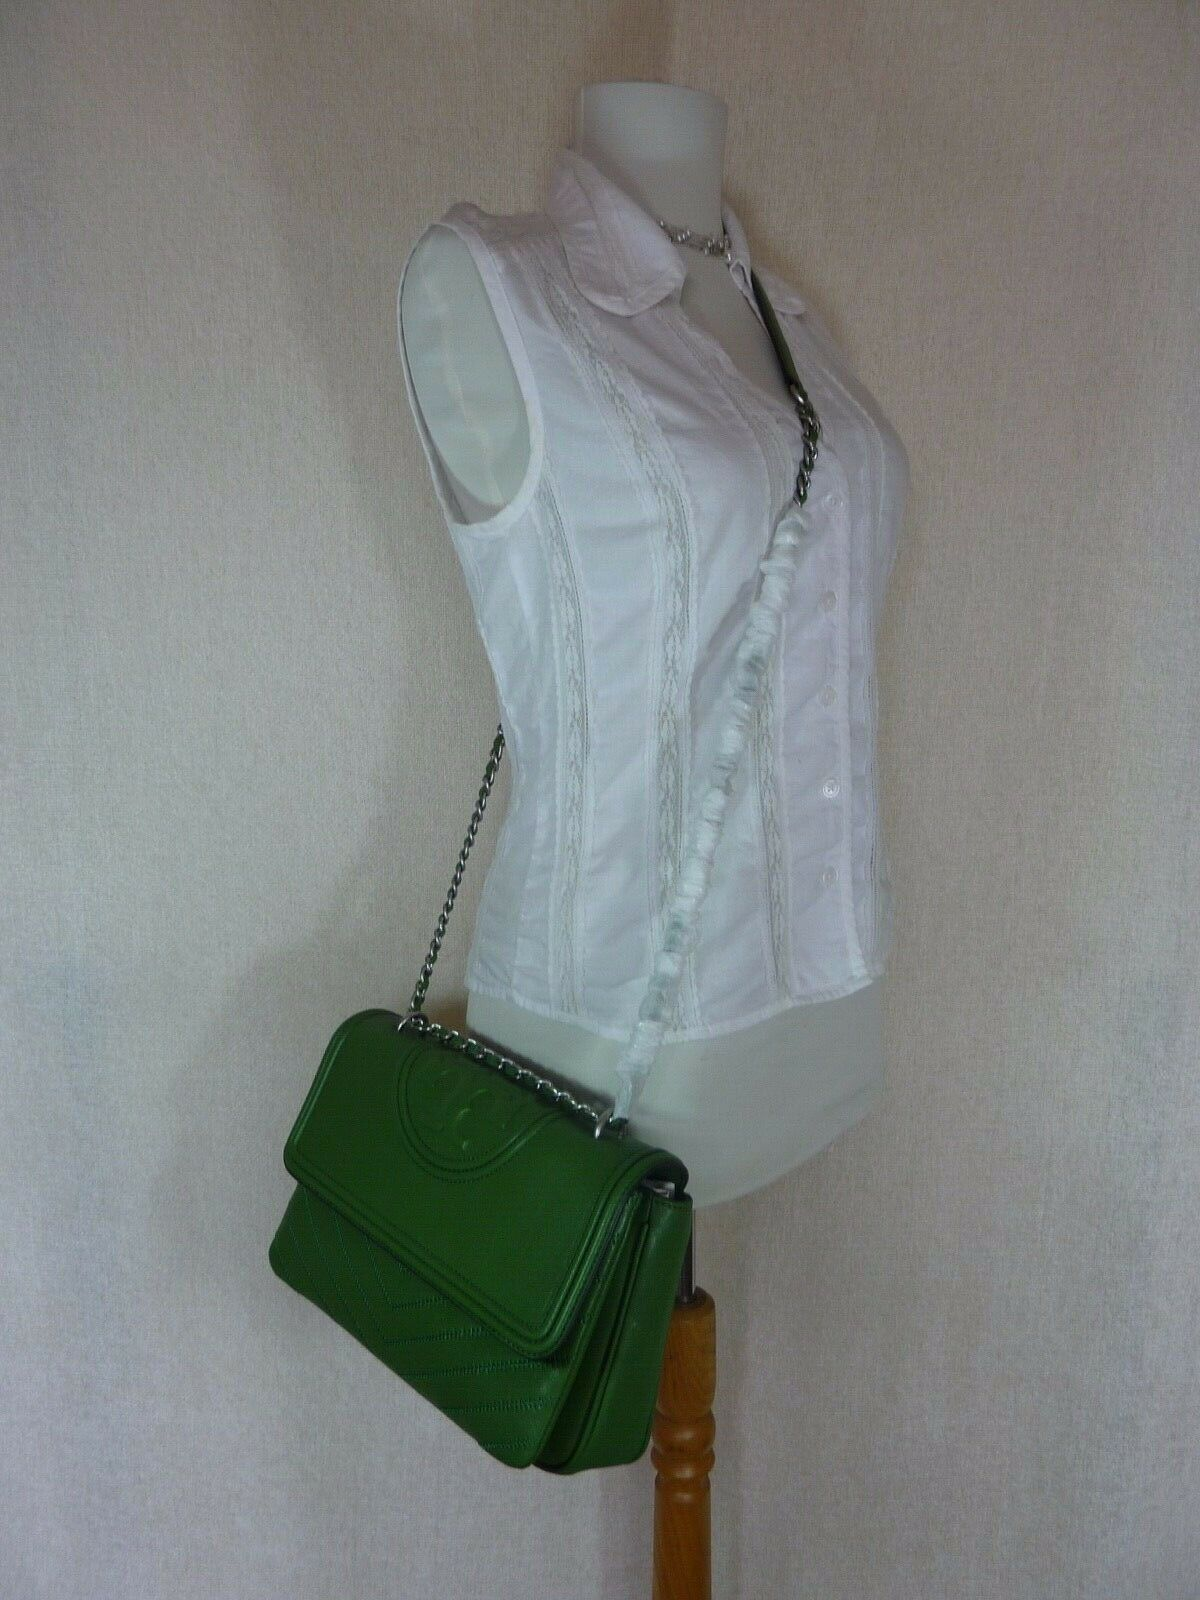 NWT Tory Burch Watercress Green Leather Fleming Convertible Shoulder Bag image 10